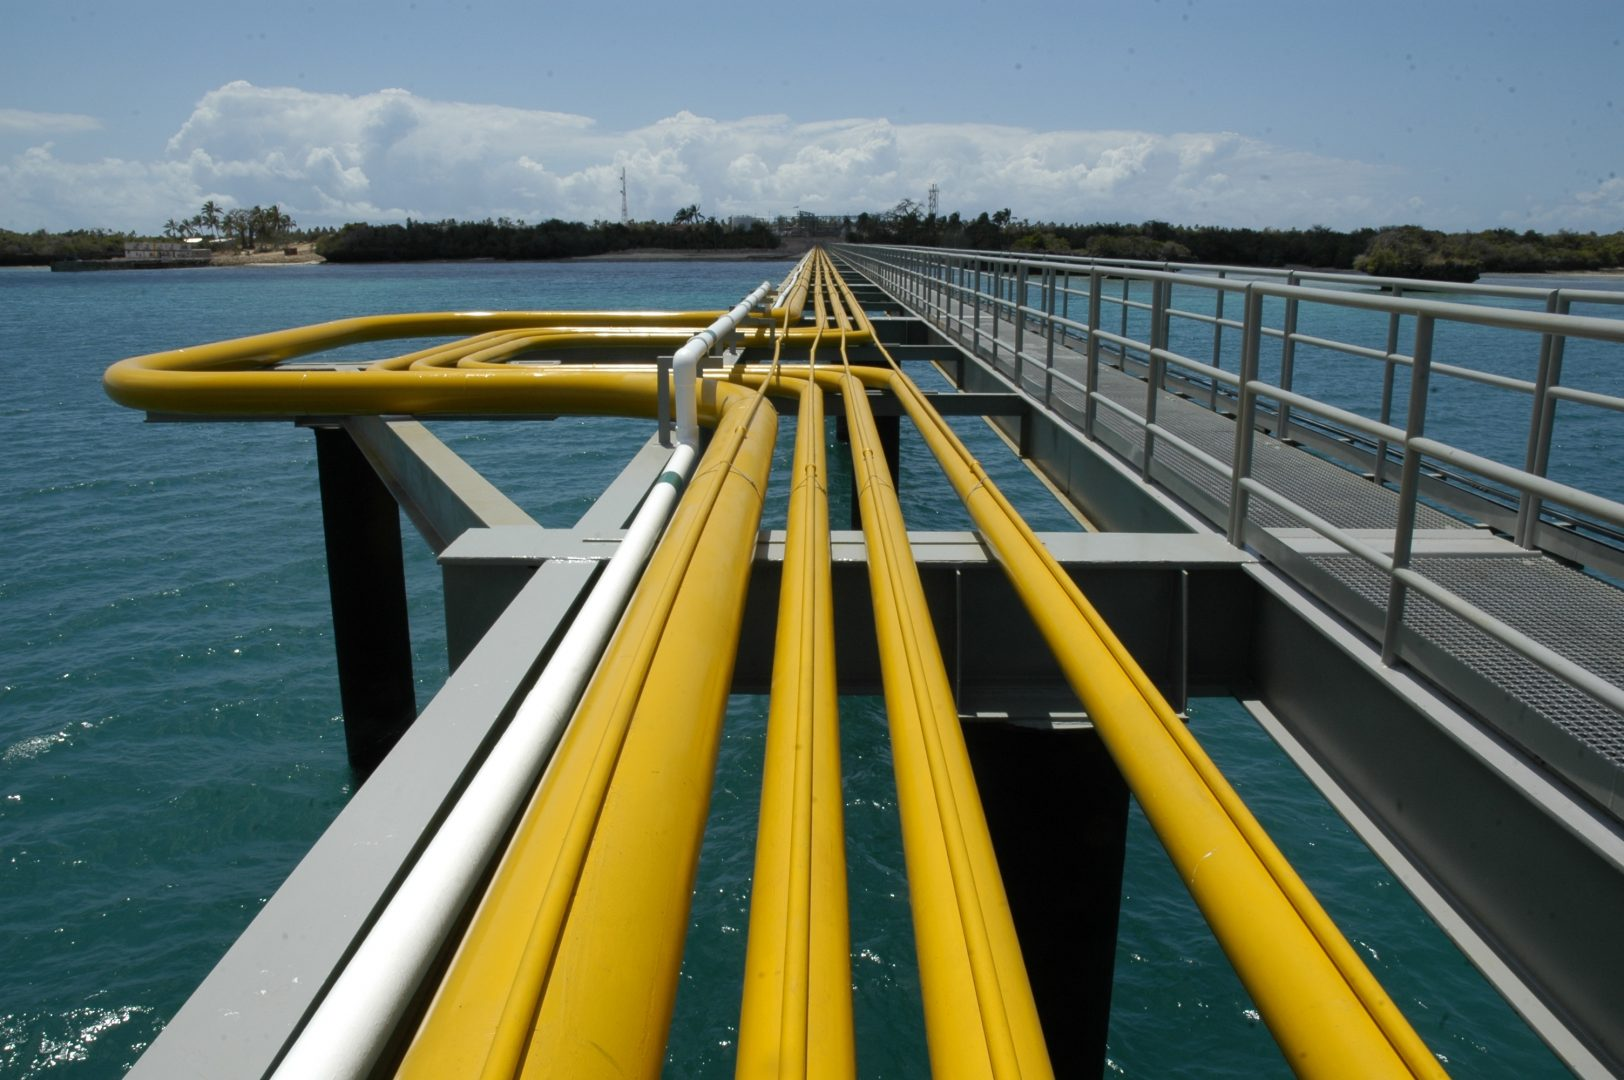 Yellow pipes extending out across some water